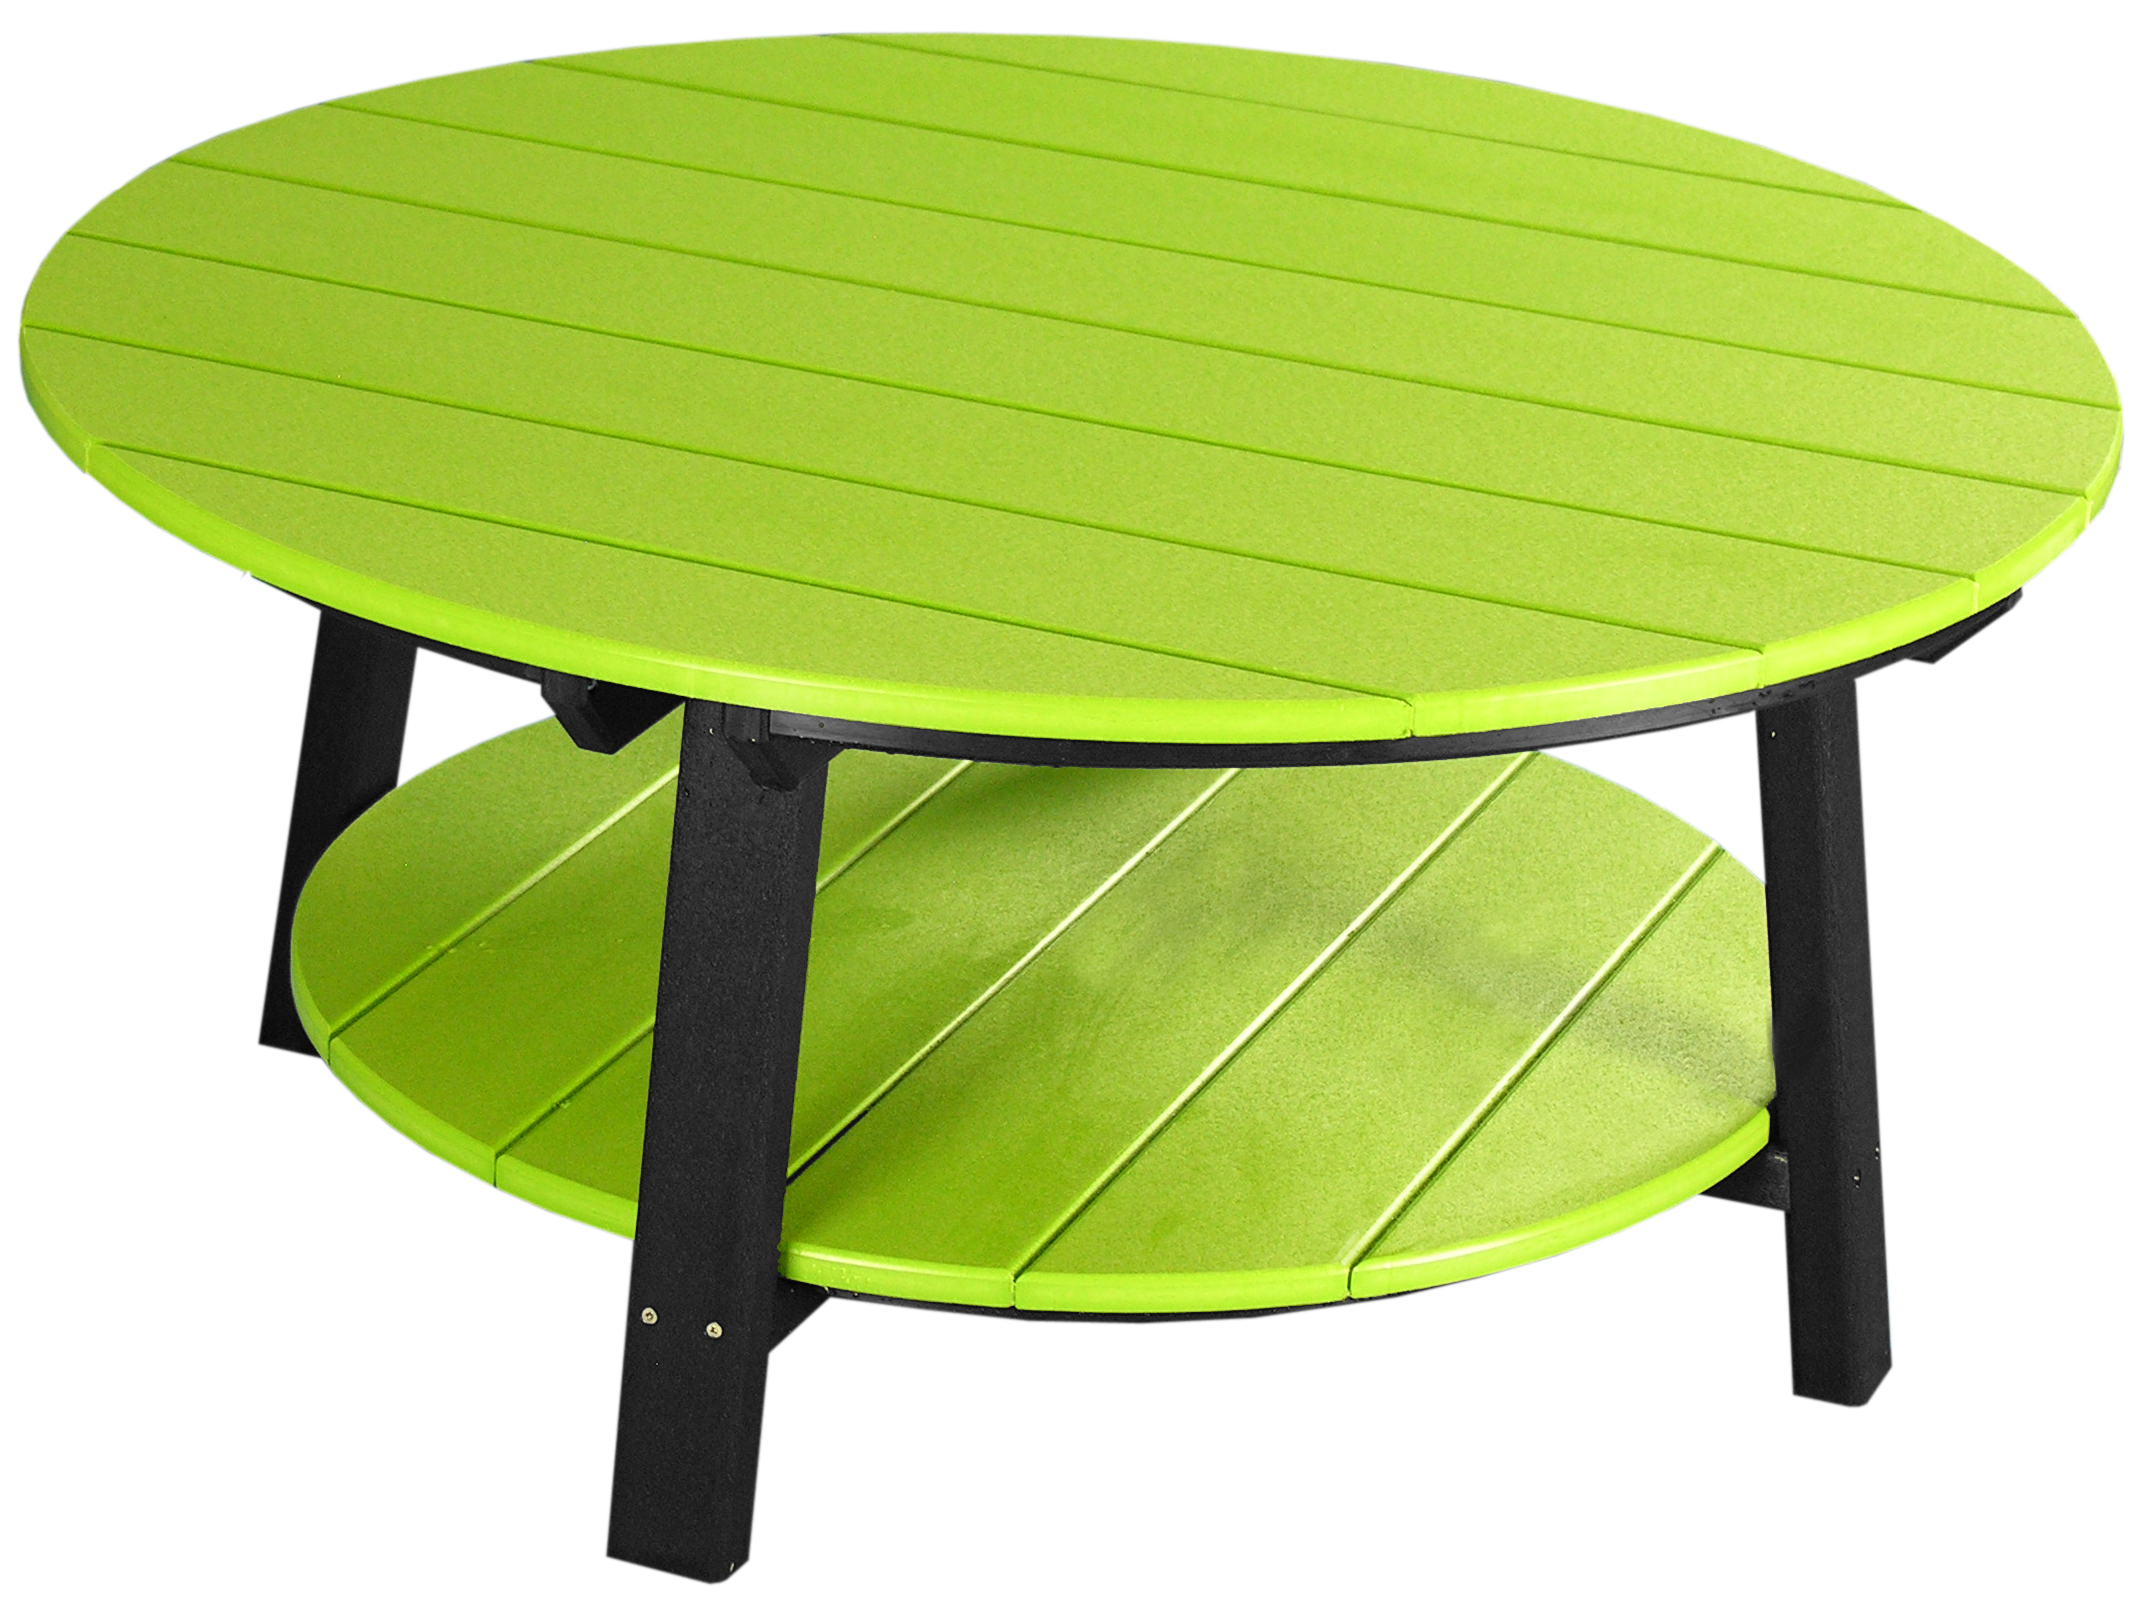 side tables amish merchant deluxe conversation table lime green outdoor beach coffee small black sofa wood farmhouse barn door bar reclaimed inch round holiday tablecloth living